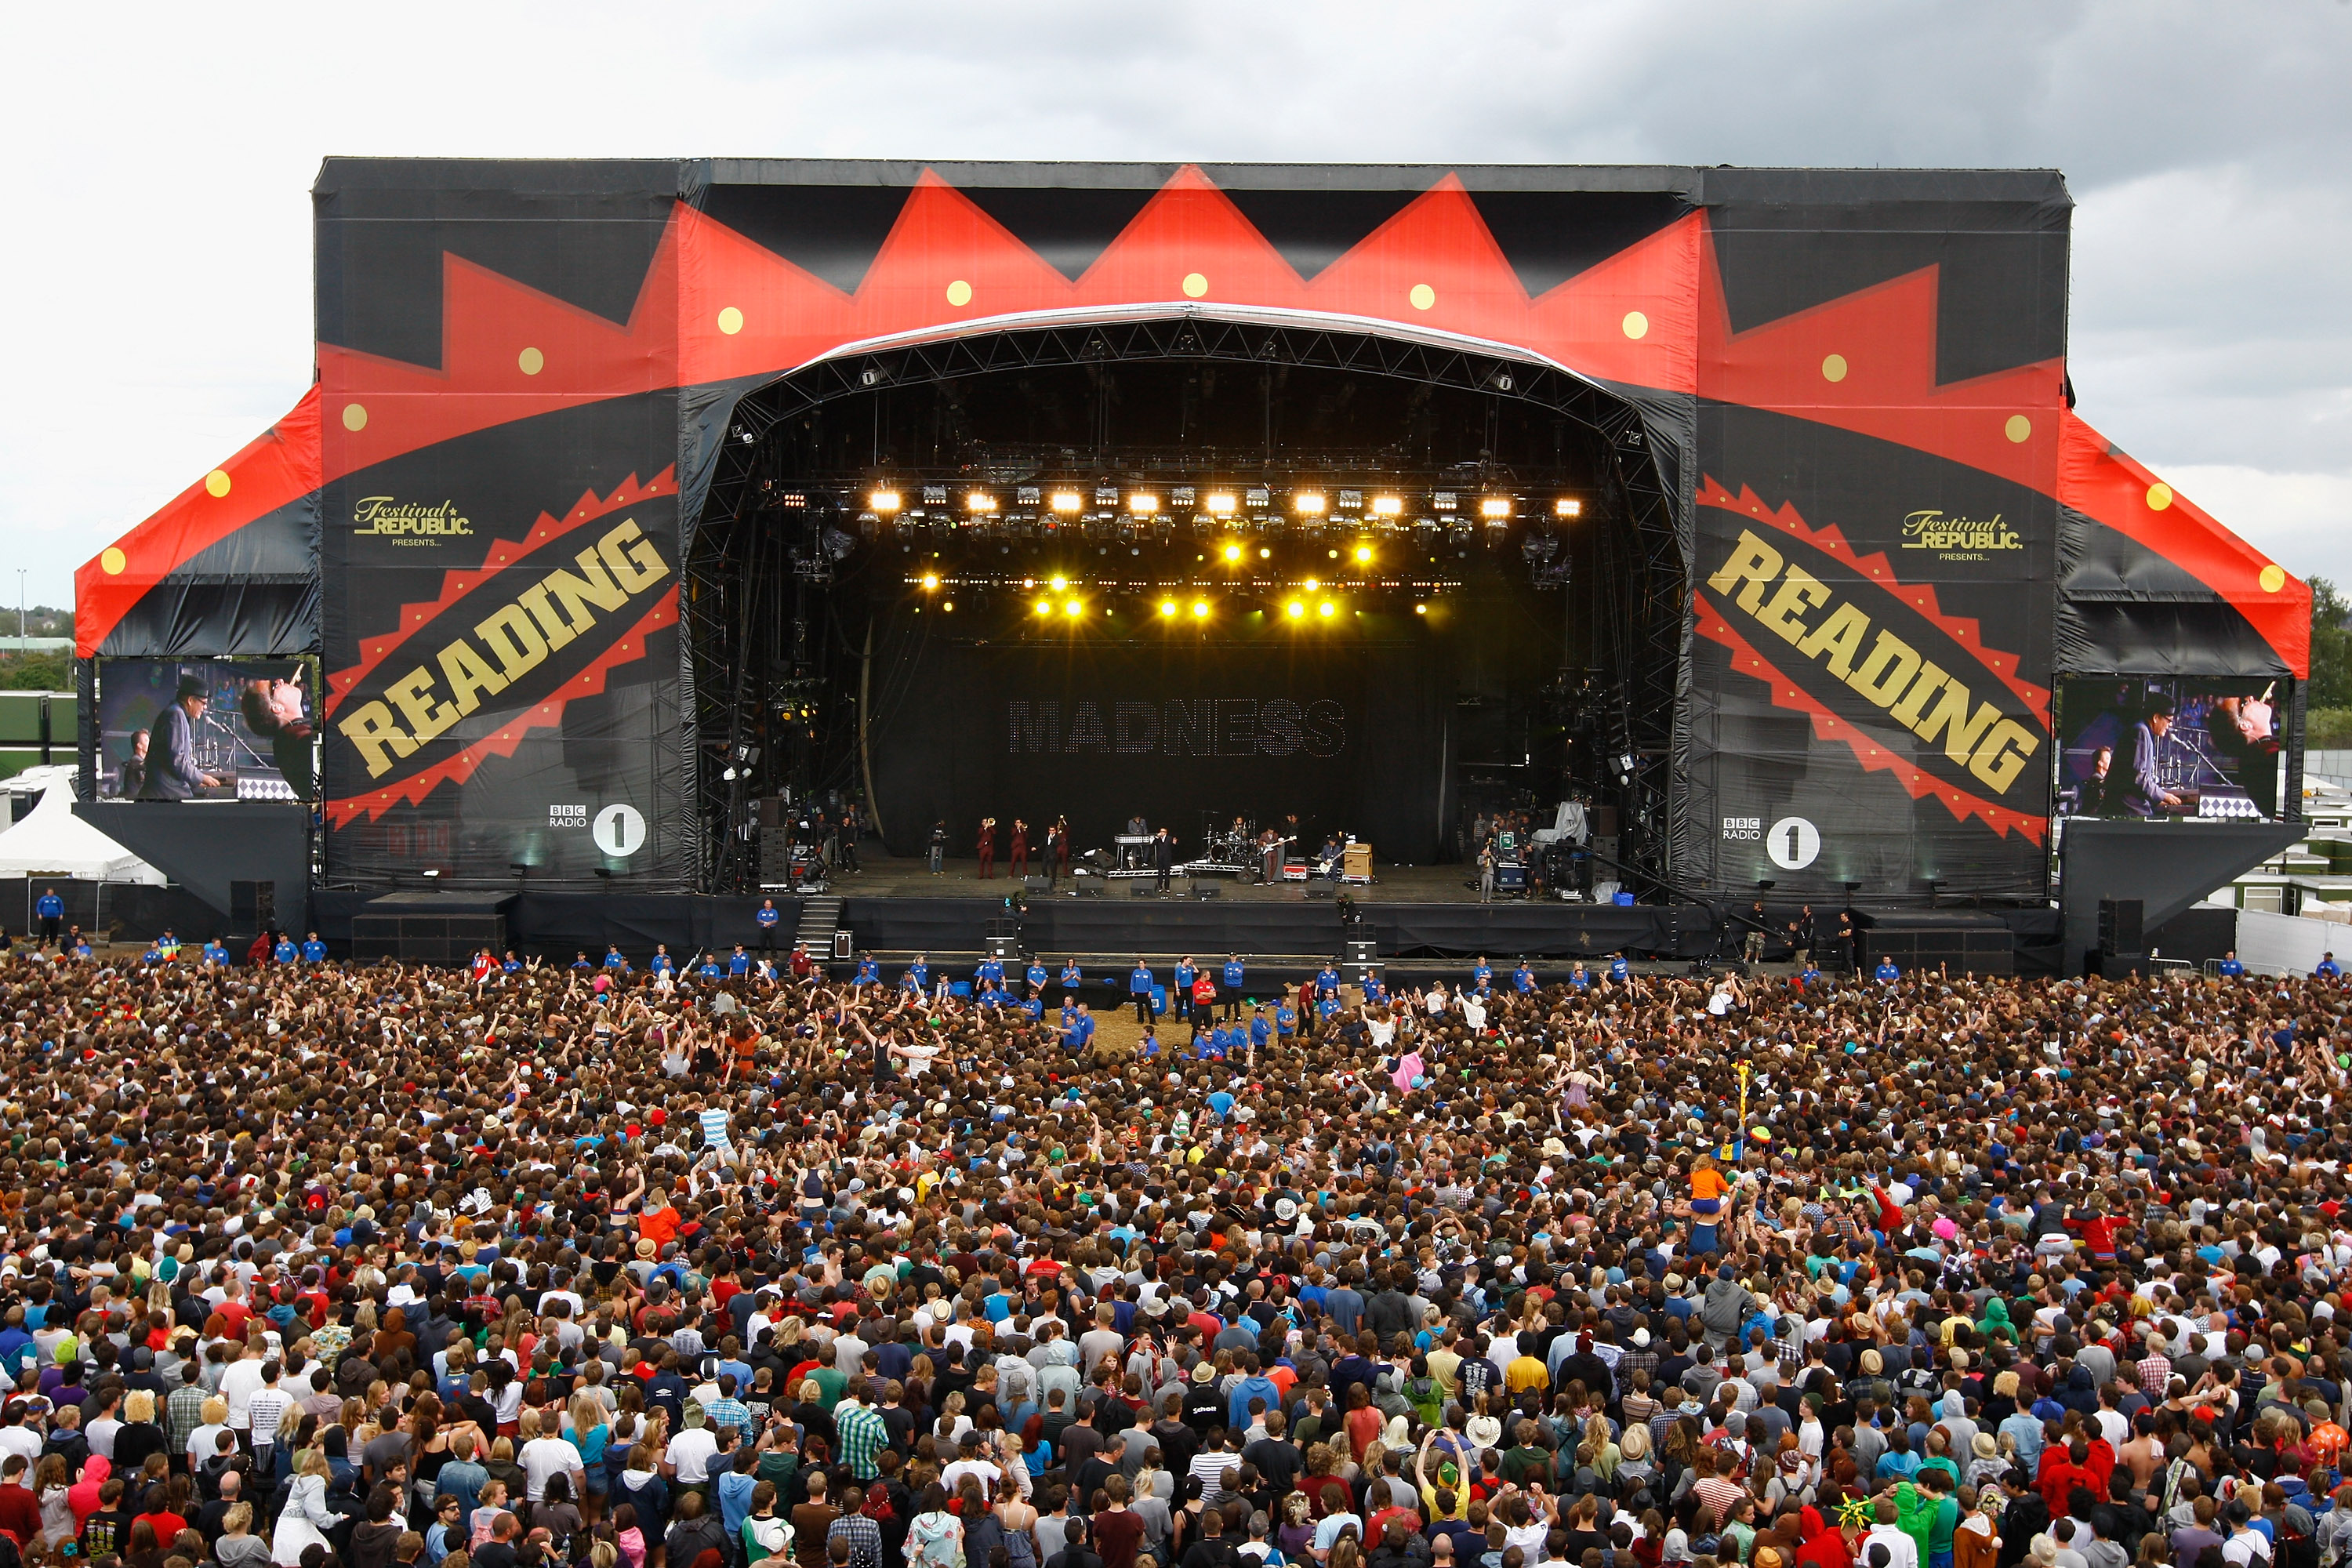 Reading And Leeds Festival: Everything you need to know from weather to where you can watch